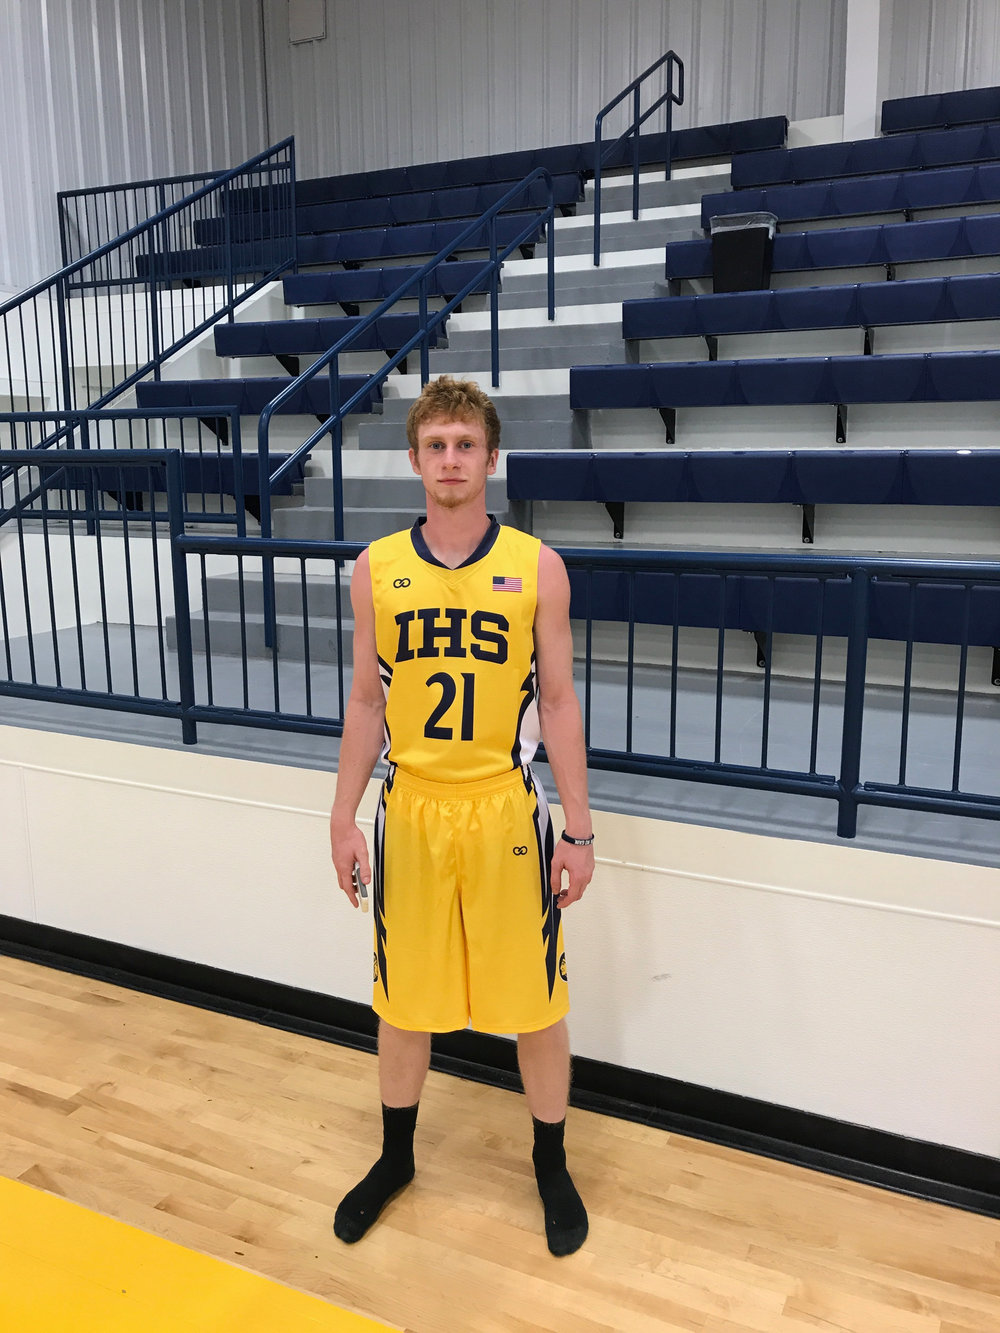 IHS yellow black white basketball uniforms jersey shirts, shorts